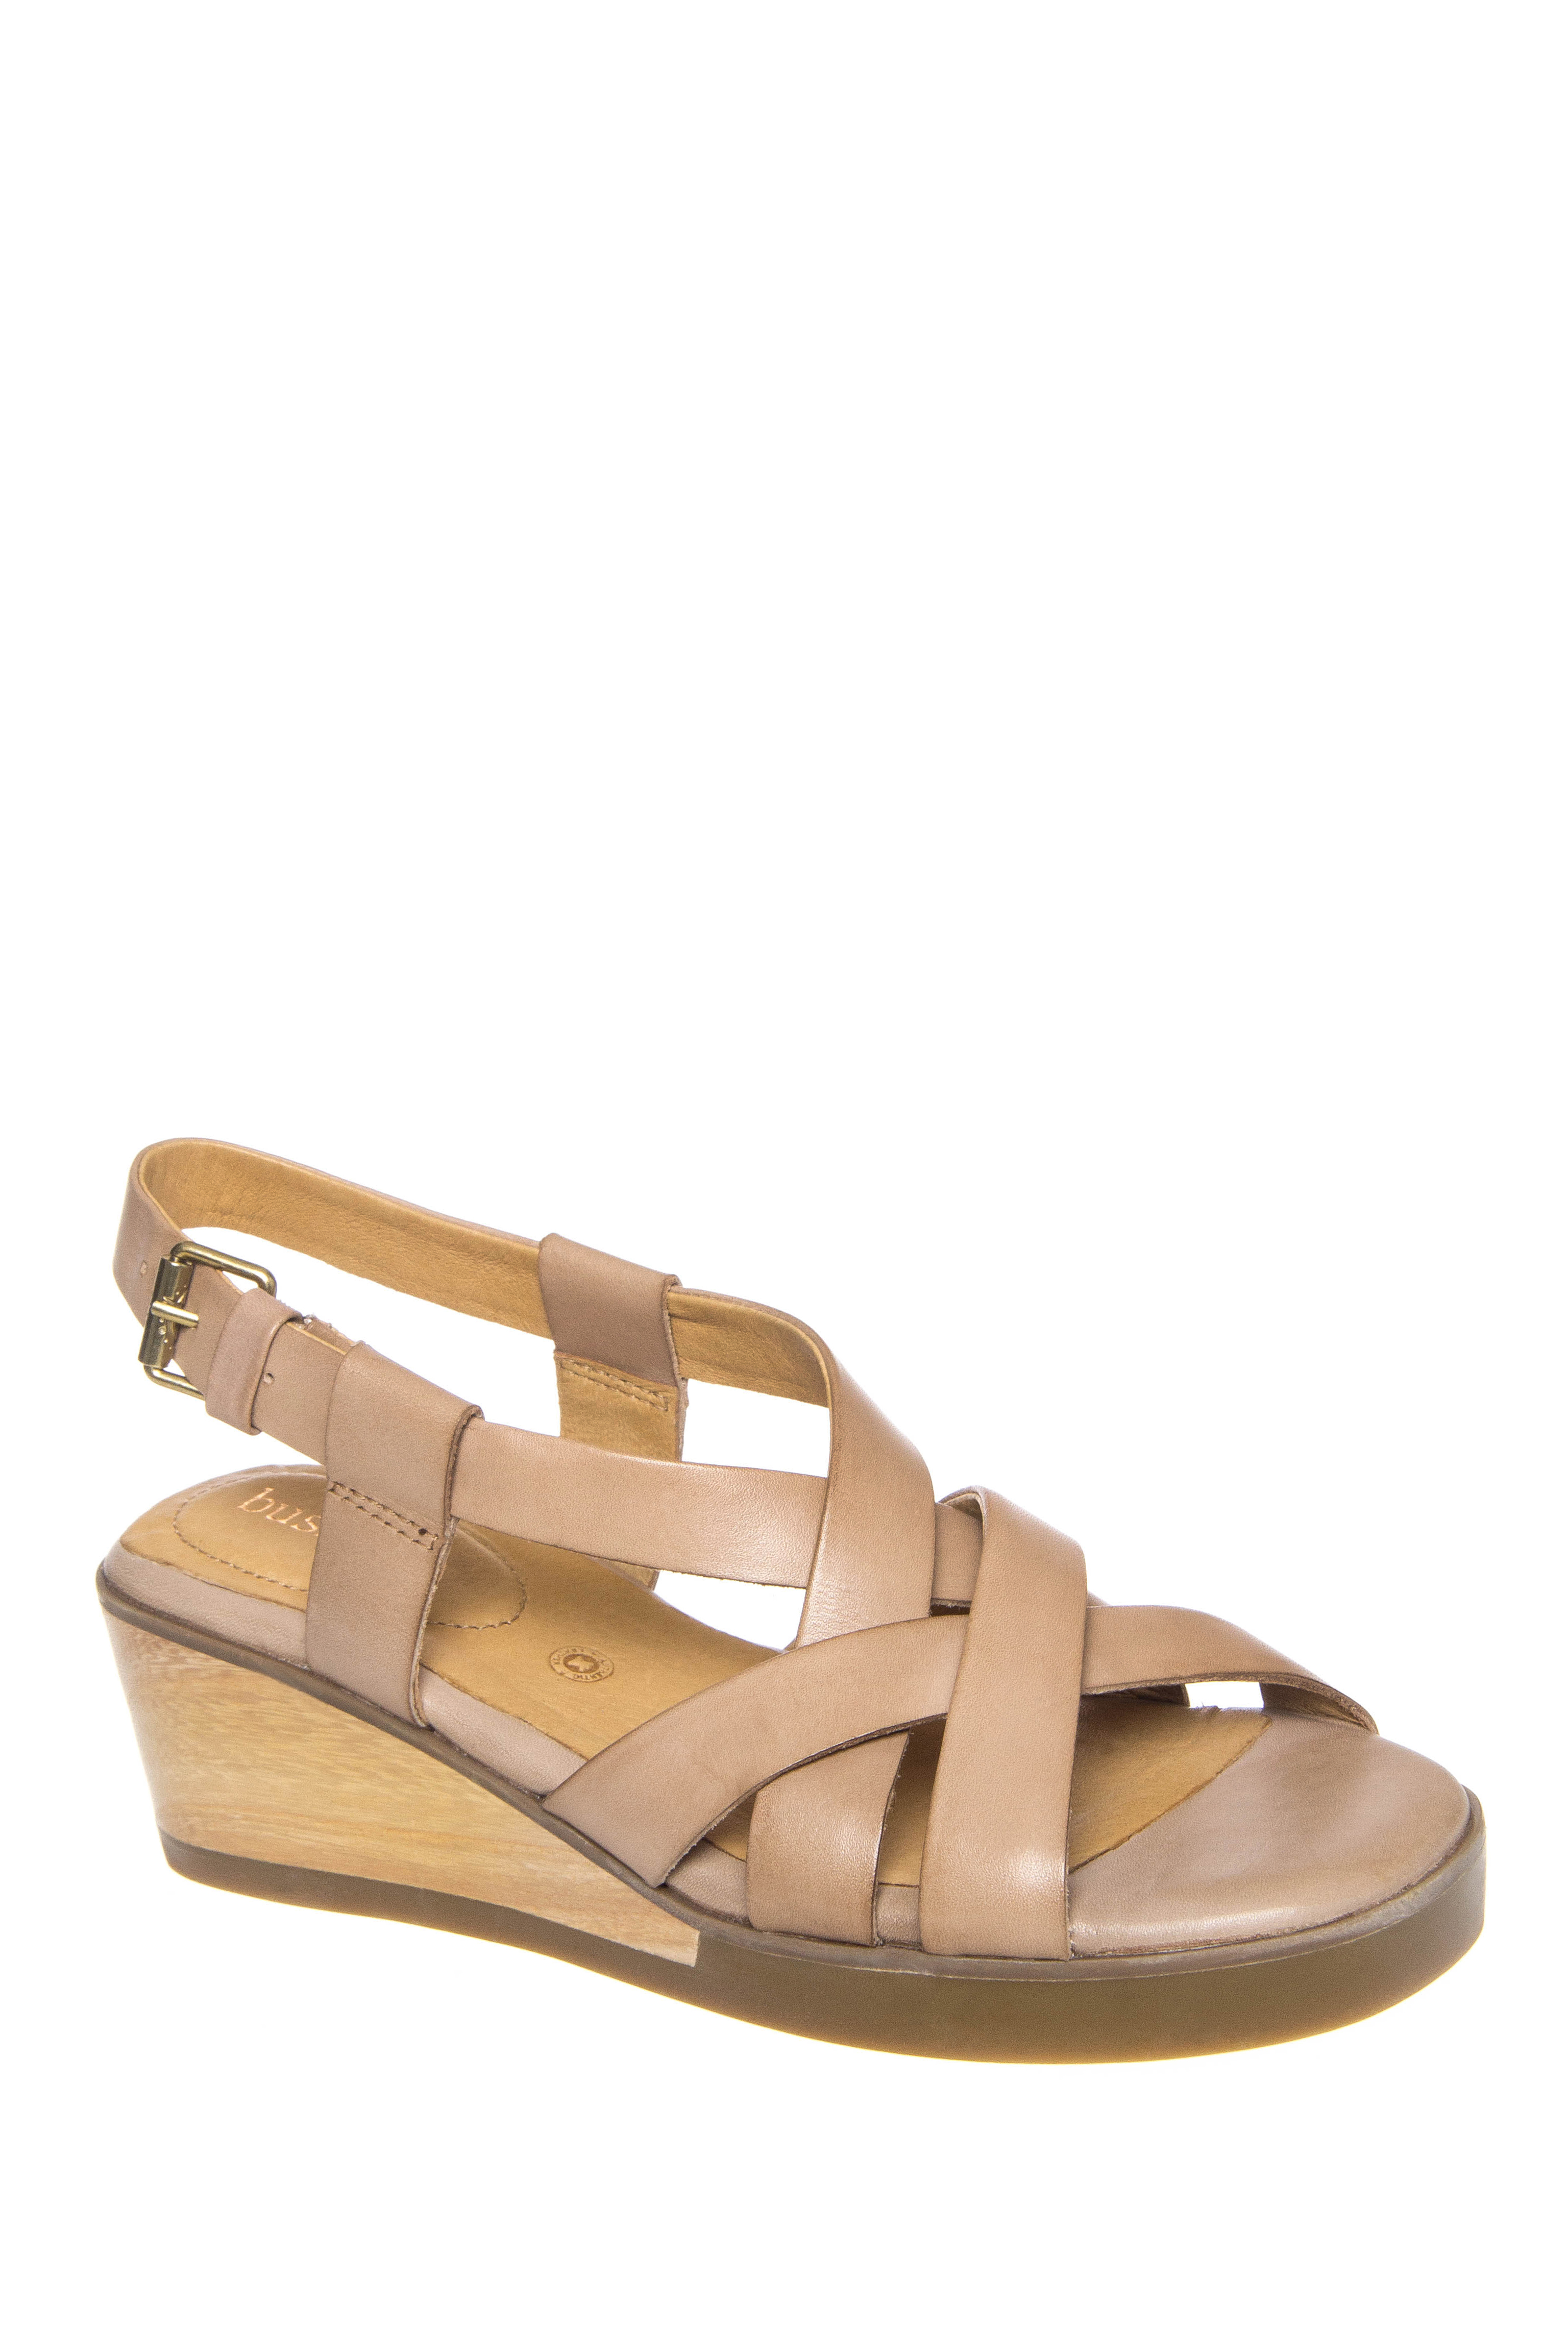 Bussola Massa Mid Wedge Sandals - Doeskin